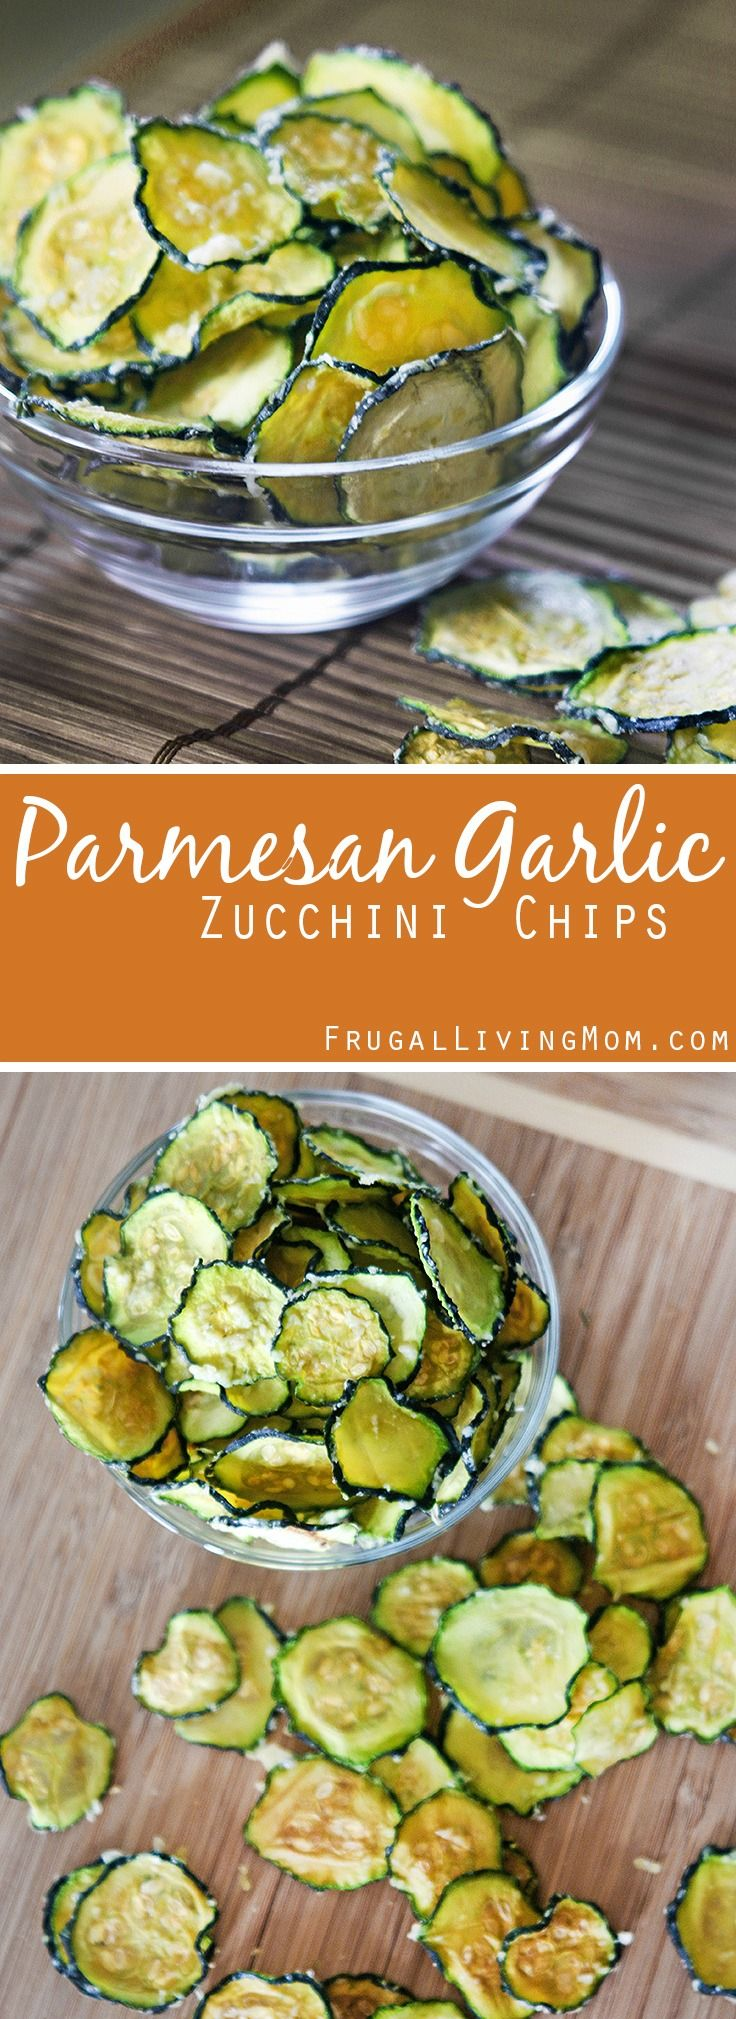 Parmesan Garlic Zucchini Chips!! Yum! Looking for a #healthy snack for the whole family? Give these a try. | via @ffandd